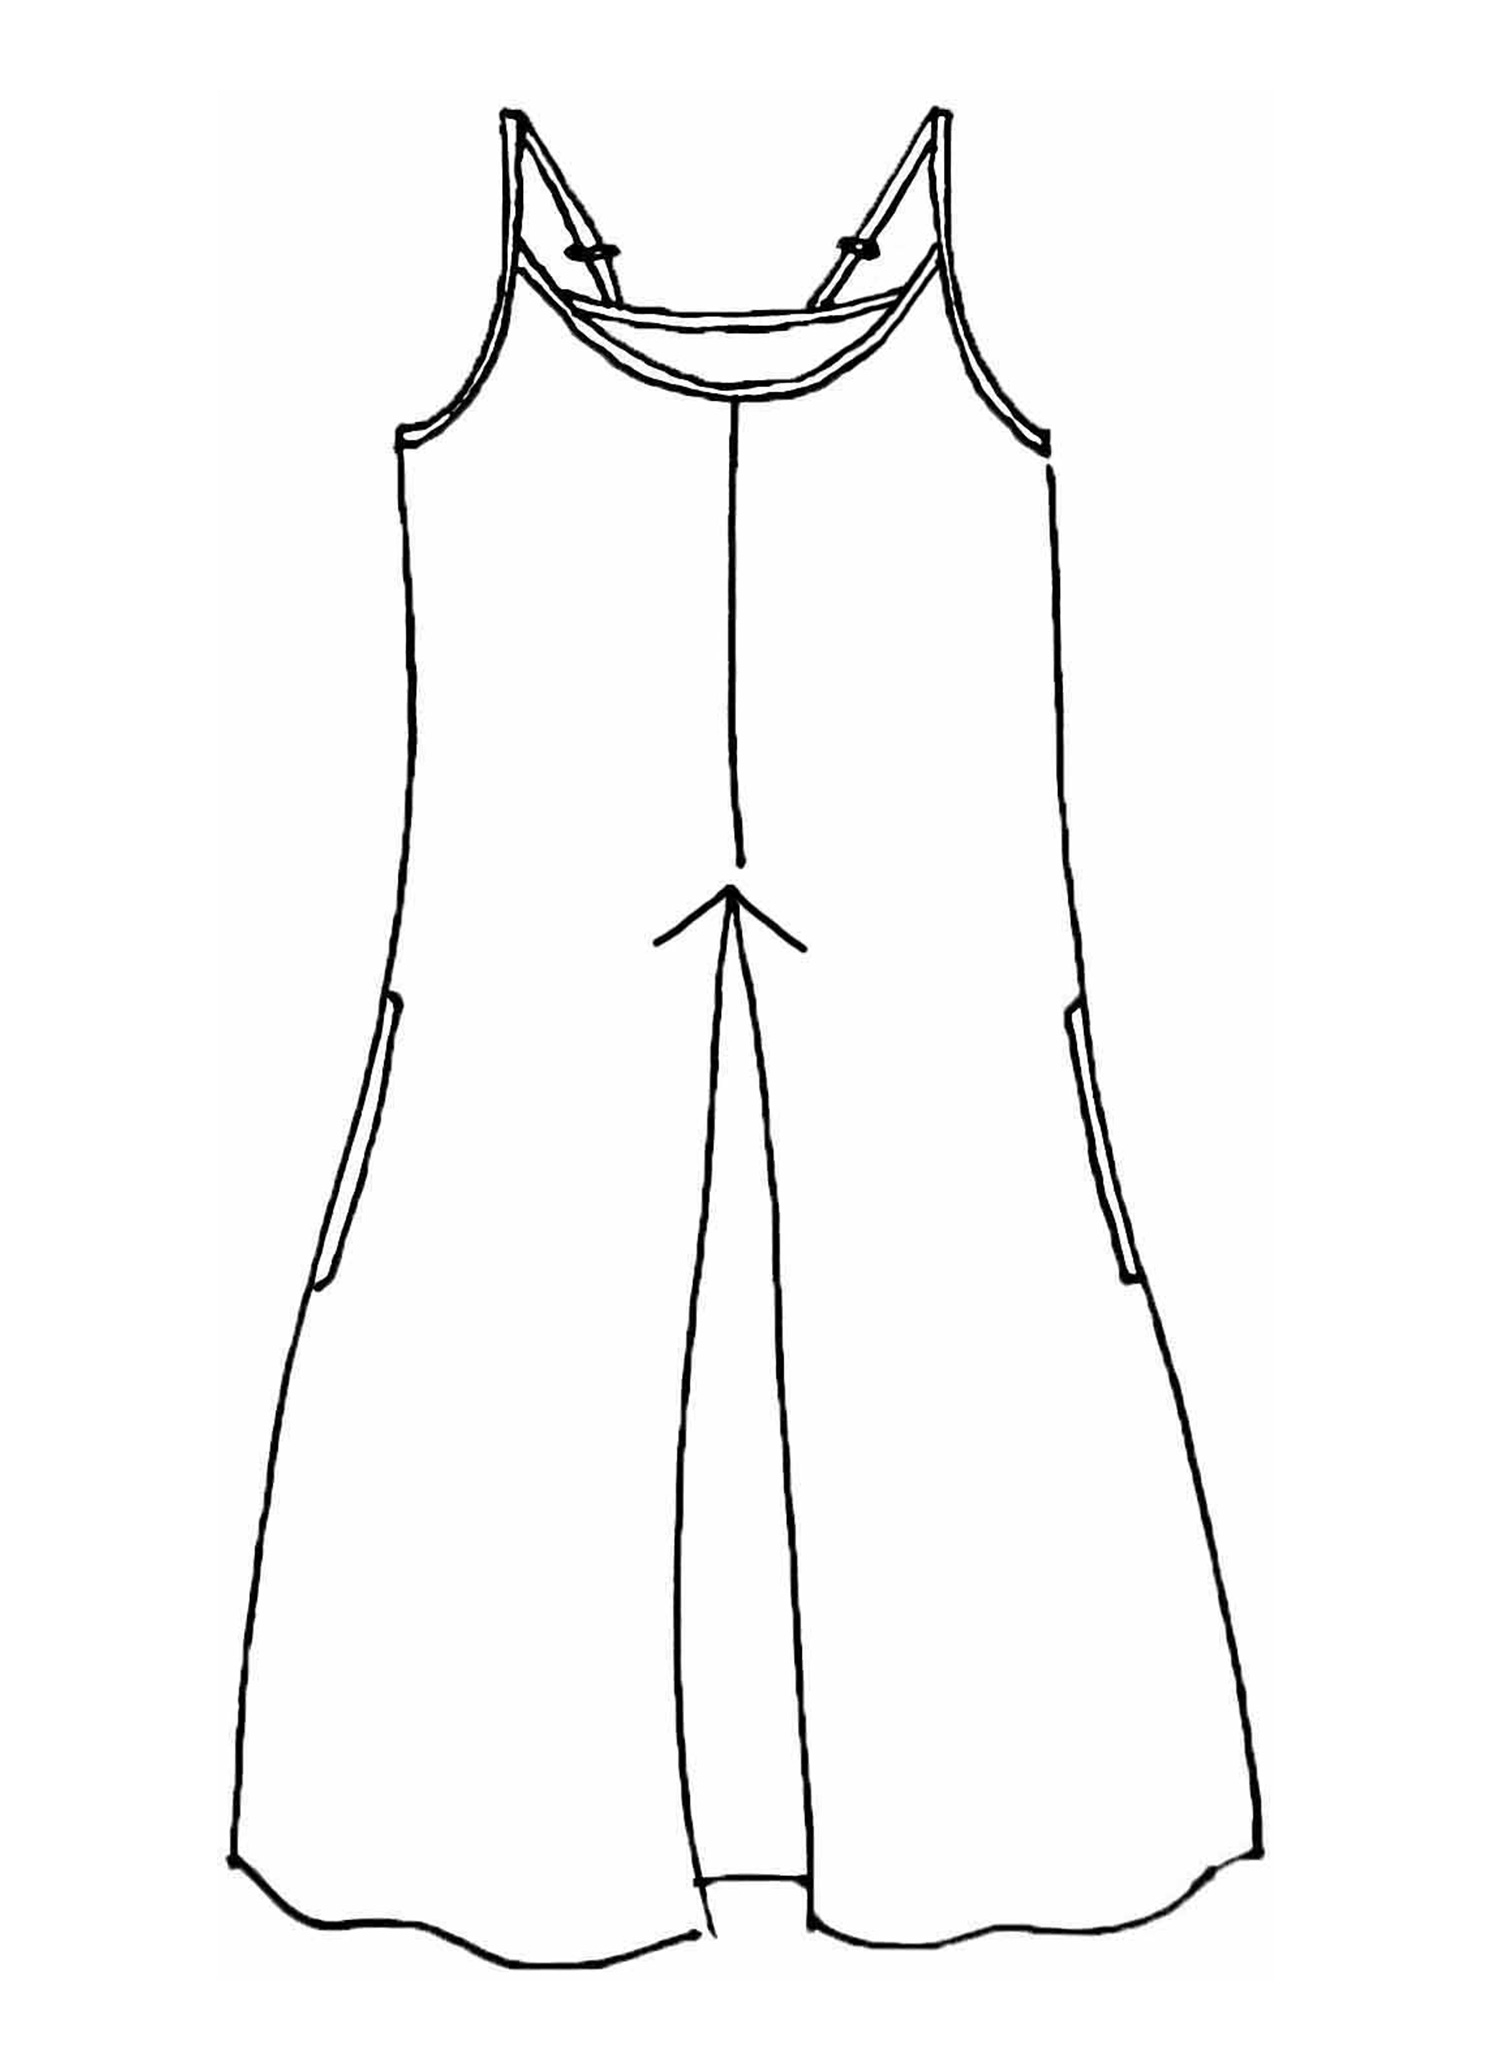 Pleated Dress sketch image